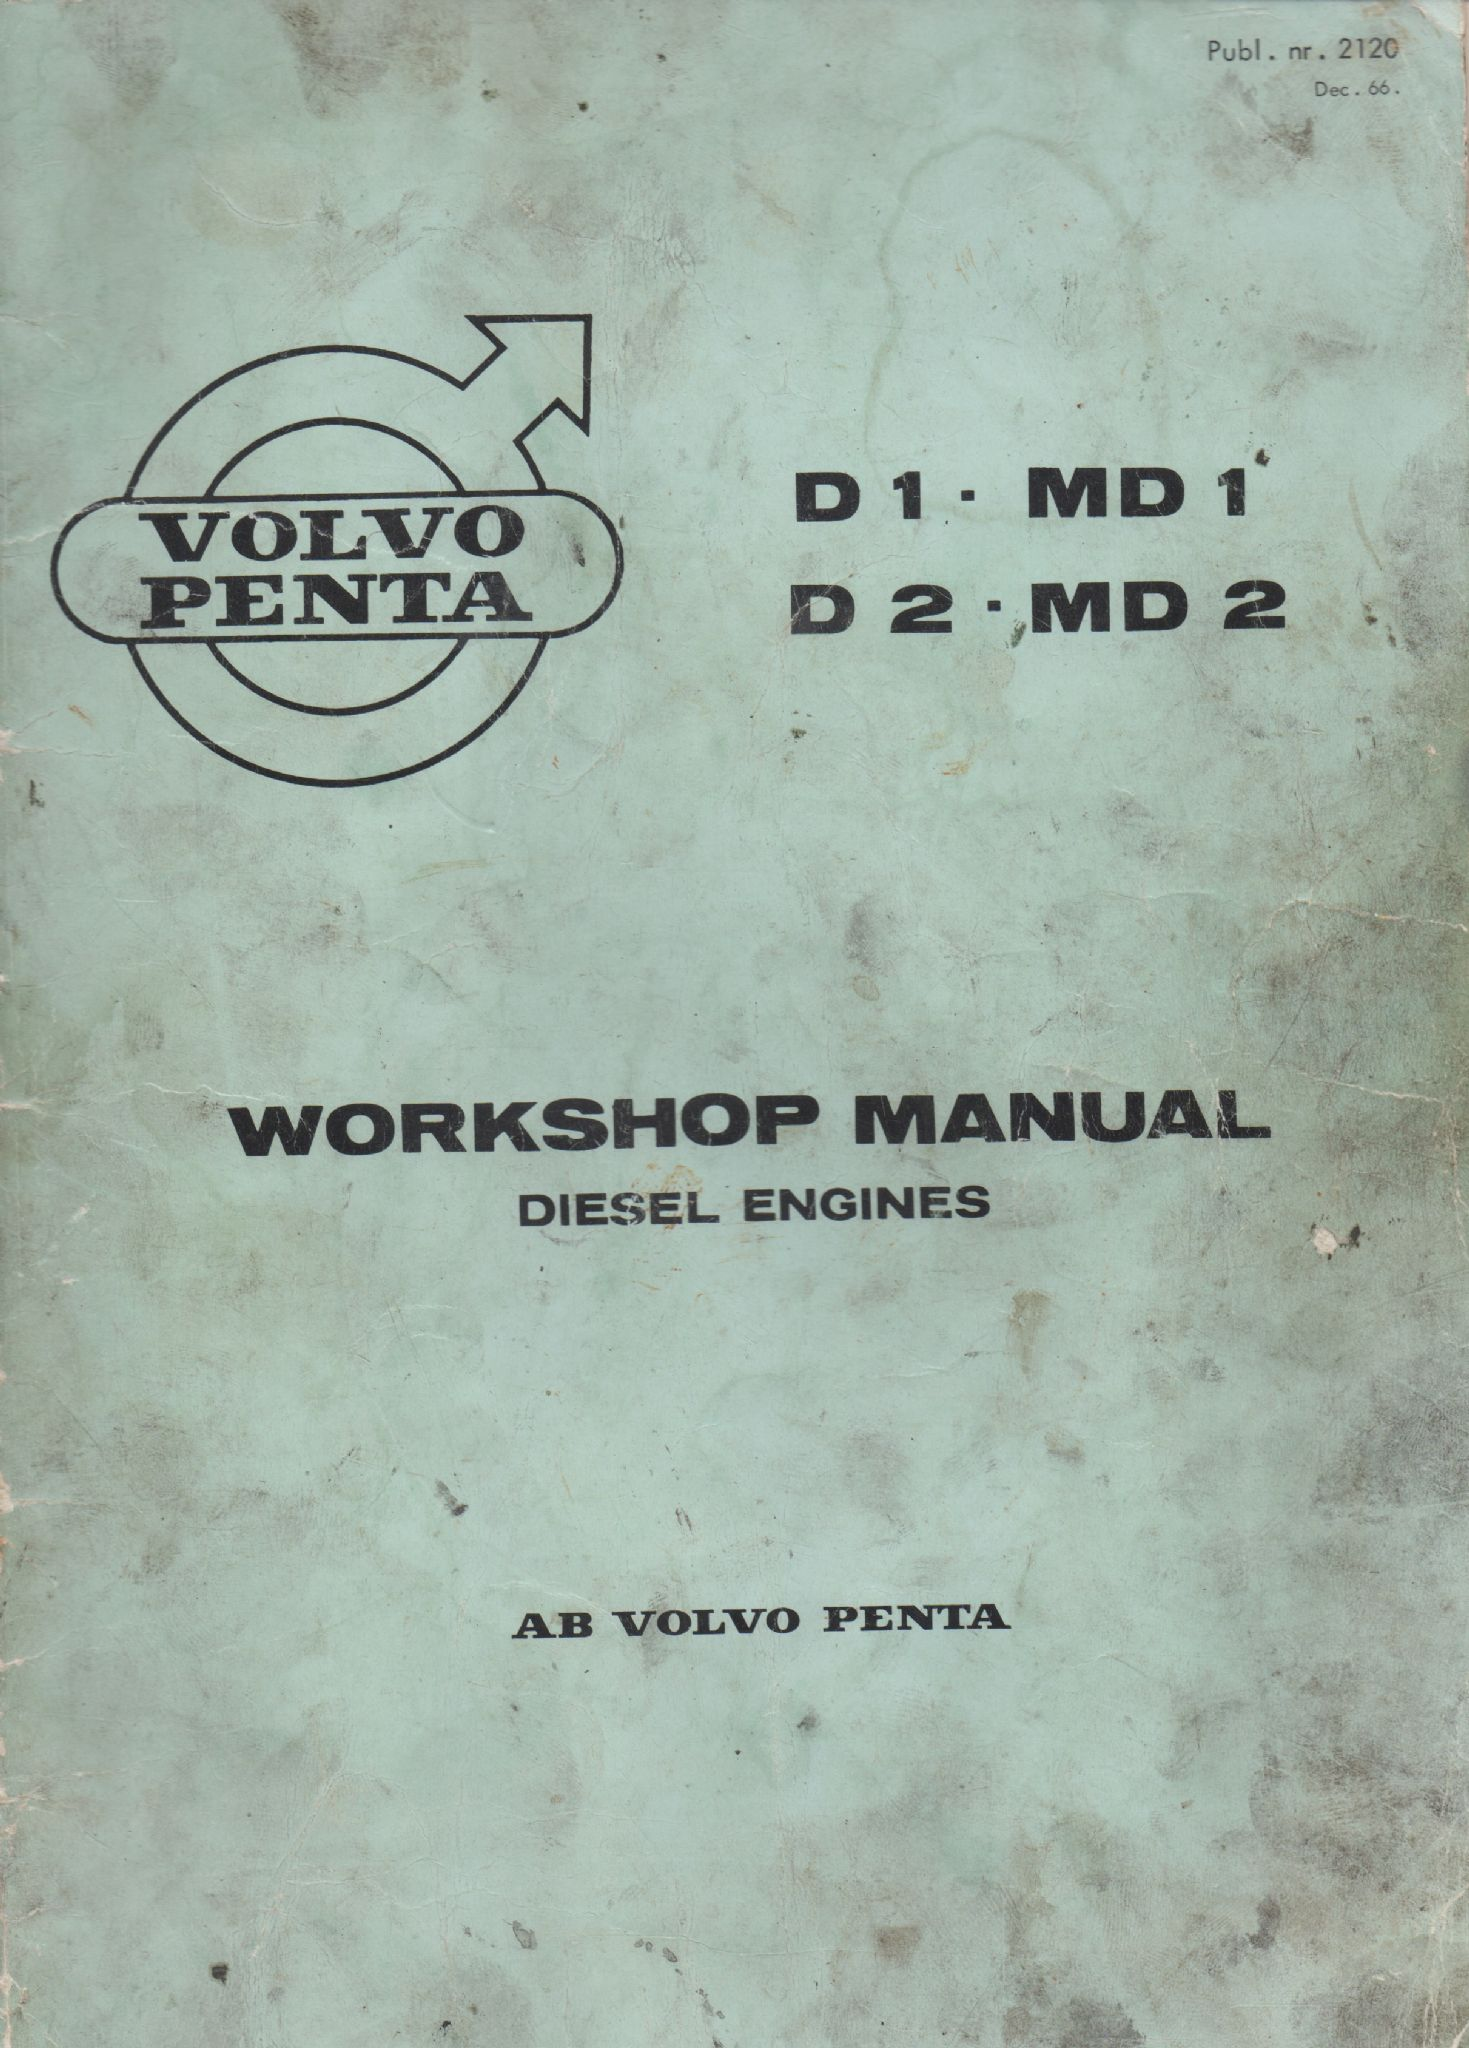 volvo penta workshop manual md1 md2 rh boatpartsandspares co uk Volvo Penta 275 Outdrive volvo penta md1 workshop manual